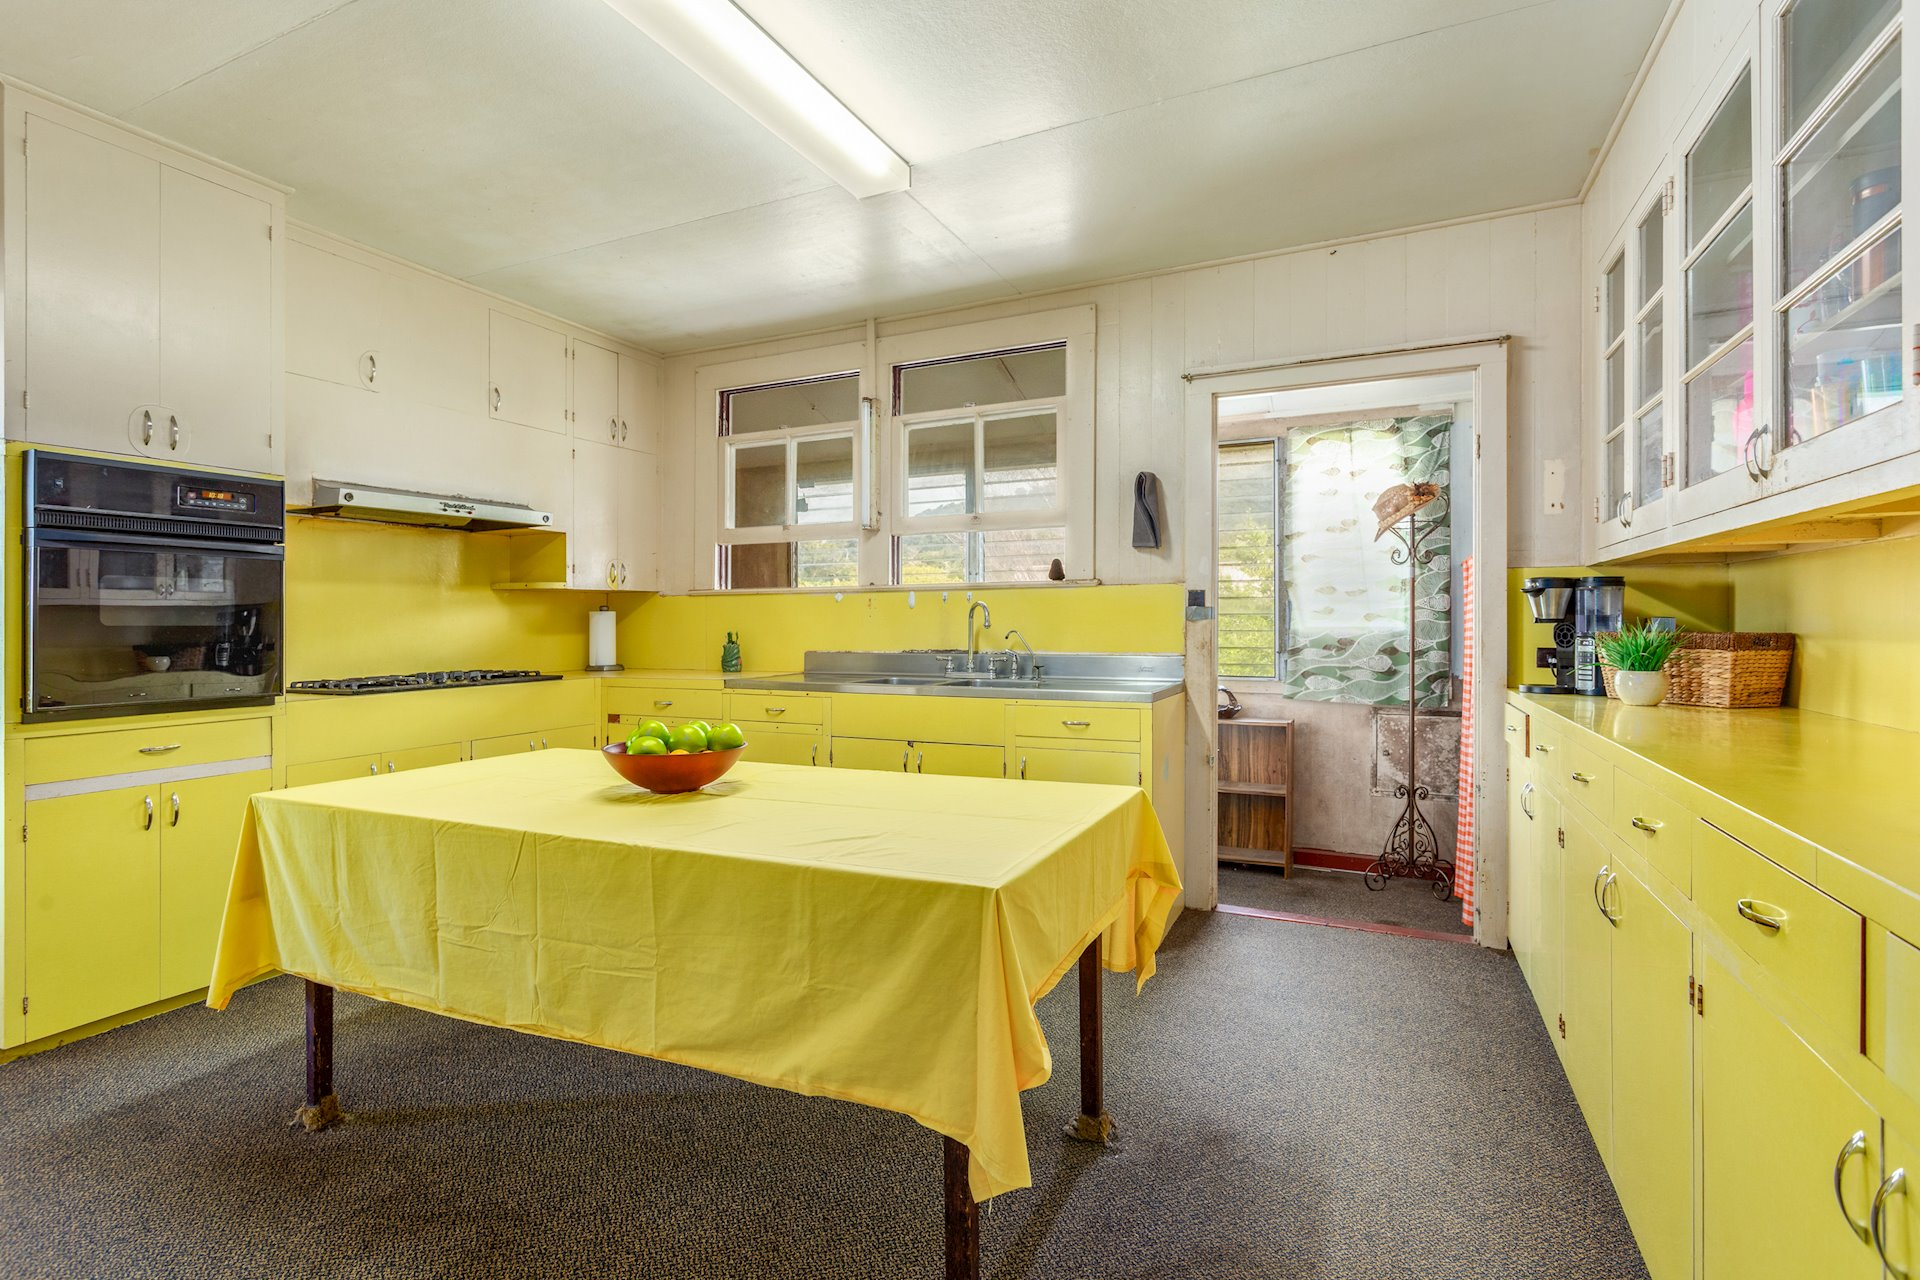 Retro kitchen has a lot of charm